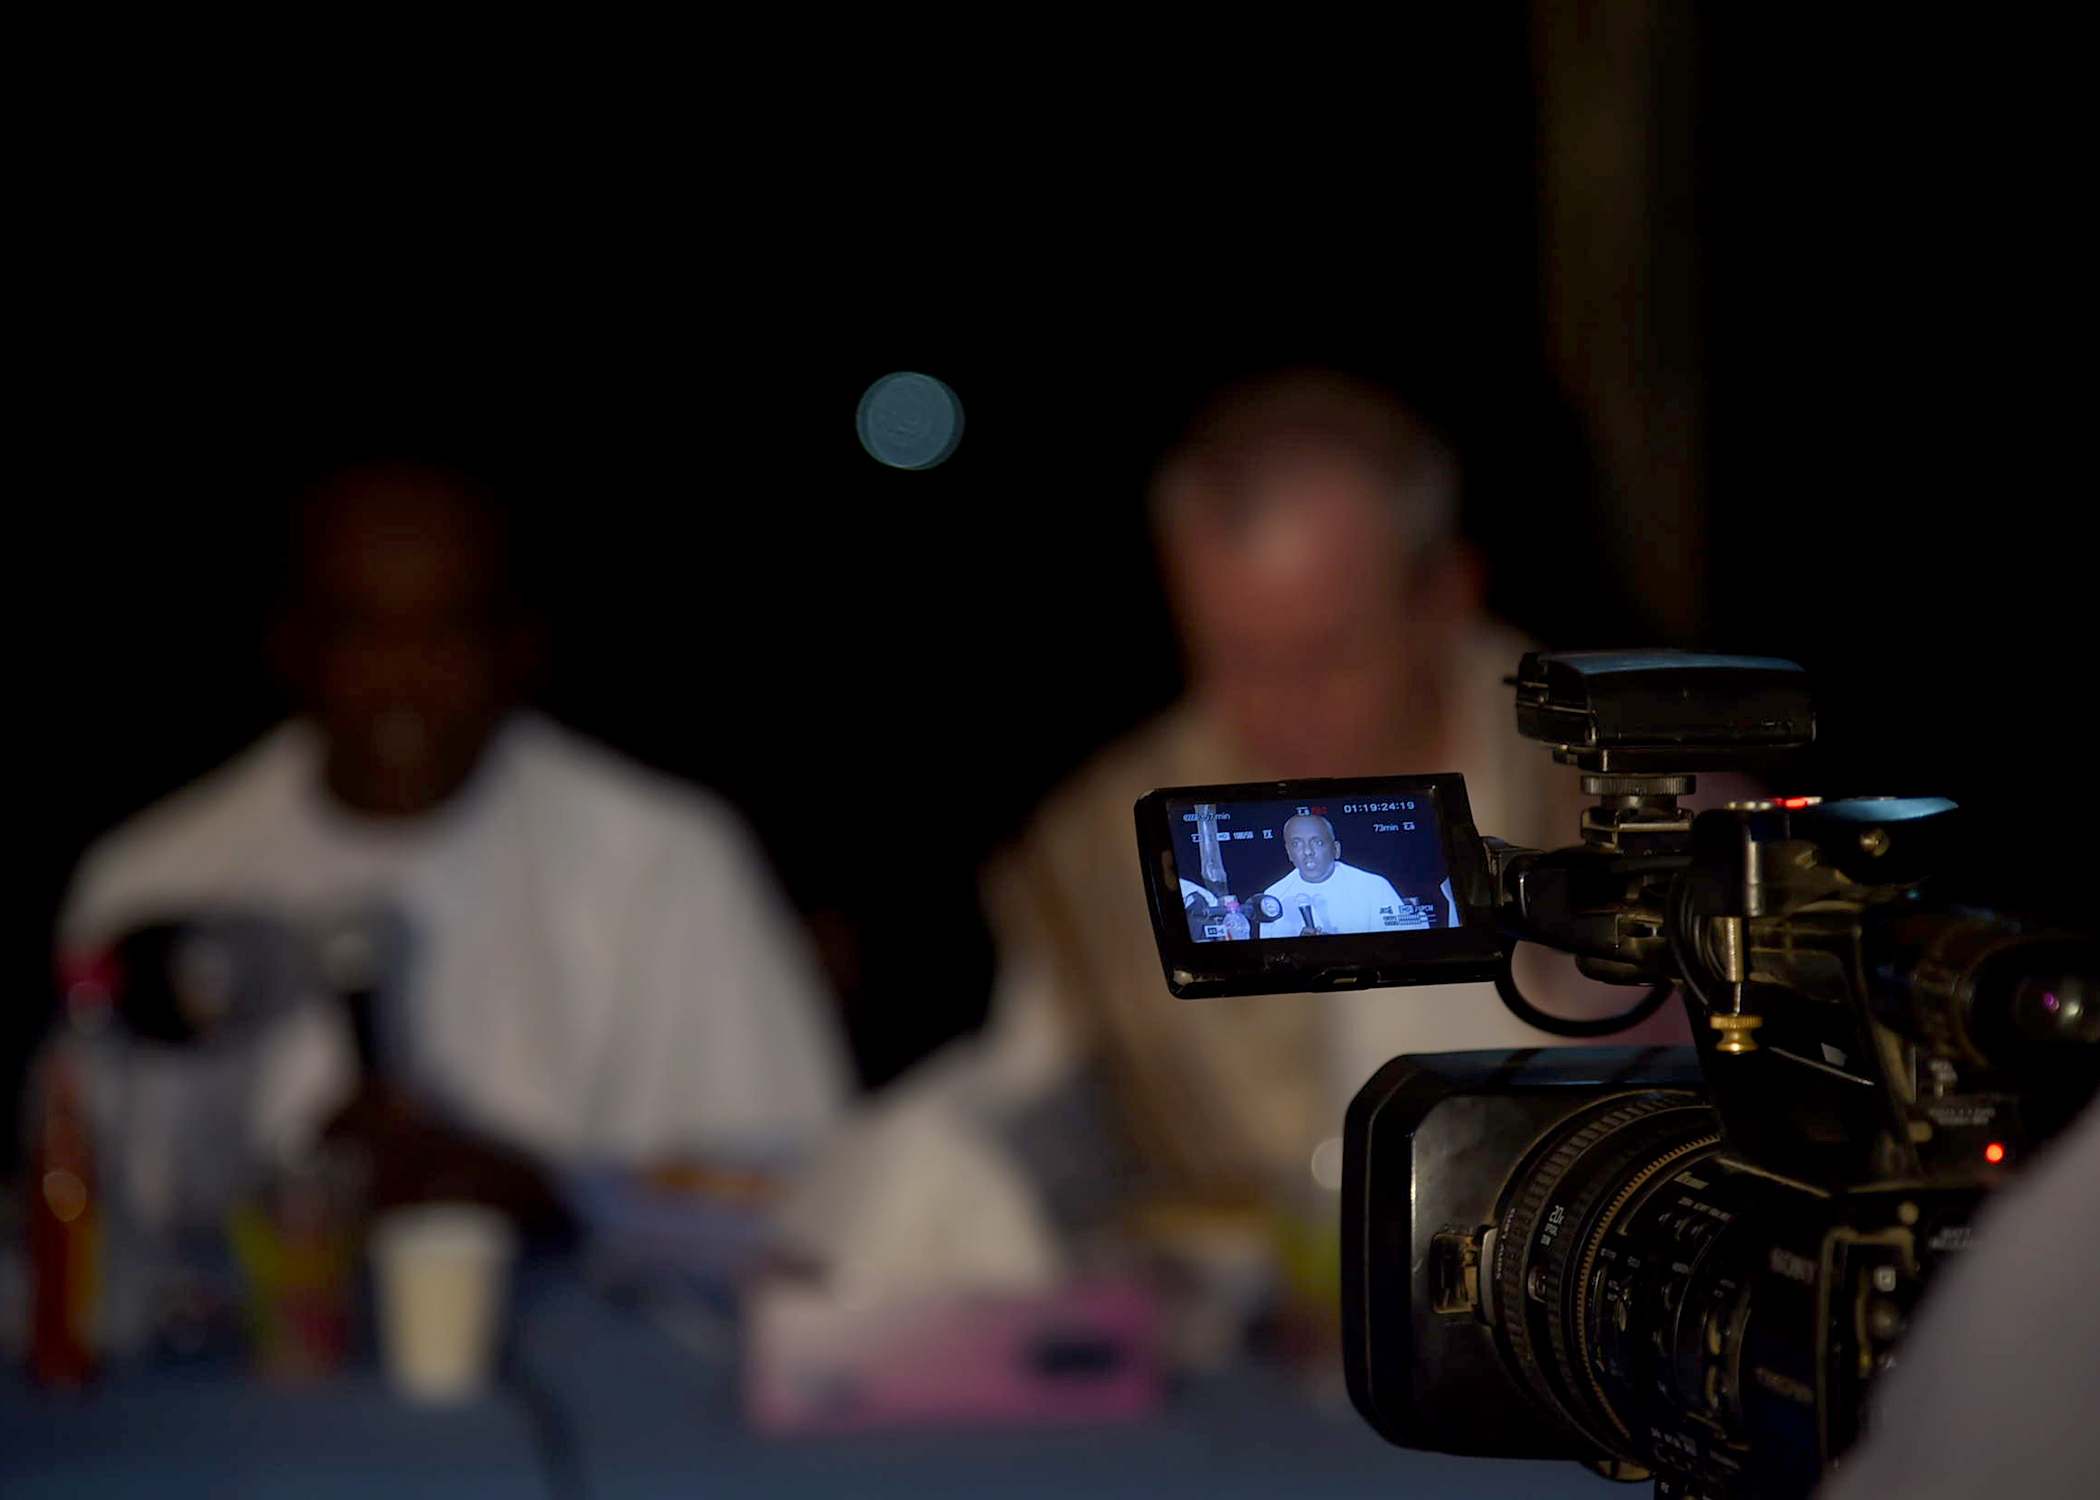 Hassan Debaleh Ahmed, prefet, or regional representative, for Obock, Djibouti, gives a speech for Djiboutian media during an Iftar celebration in Obock, May 14, 2019. Iftar is a fast-breaking meal Muslims eat after sunset during Ramadan, the ninth month of the Islamic year observed with daily fasting from dawn to sunset. Staff from the U.S. Embassy Djibouti and Combined Joint Task Force-Horn of Africa coordinated the event. (U.S. Navy photo by Mass Communication Specialist 1st Class Nick Scott)